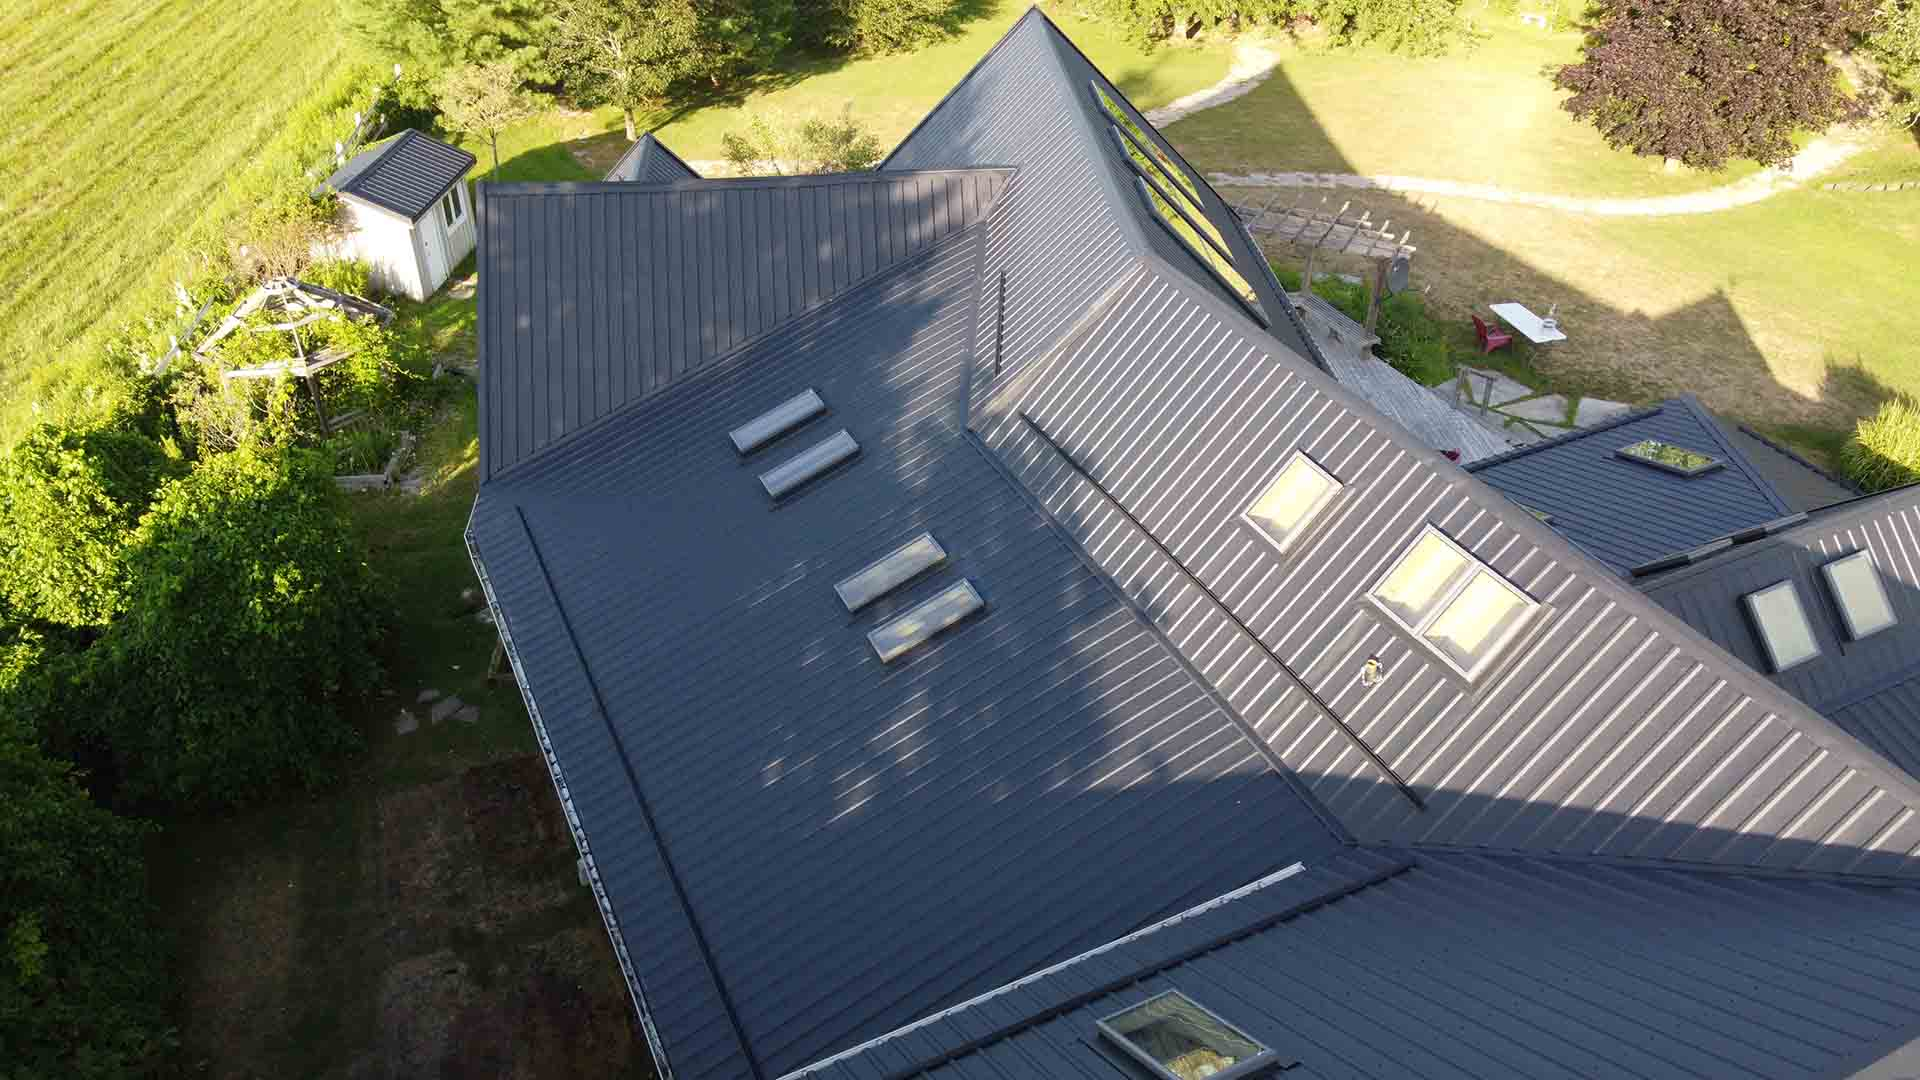 Winter-Proof Your Home With a Metal Roof